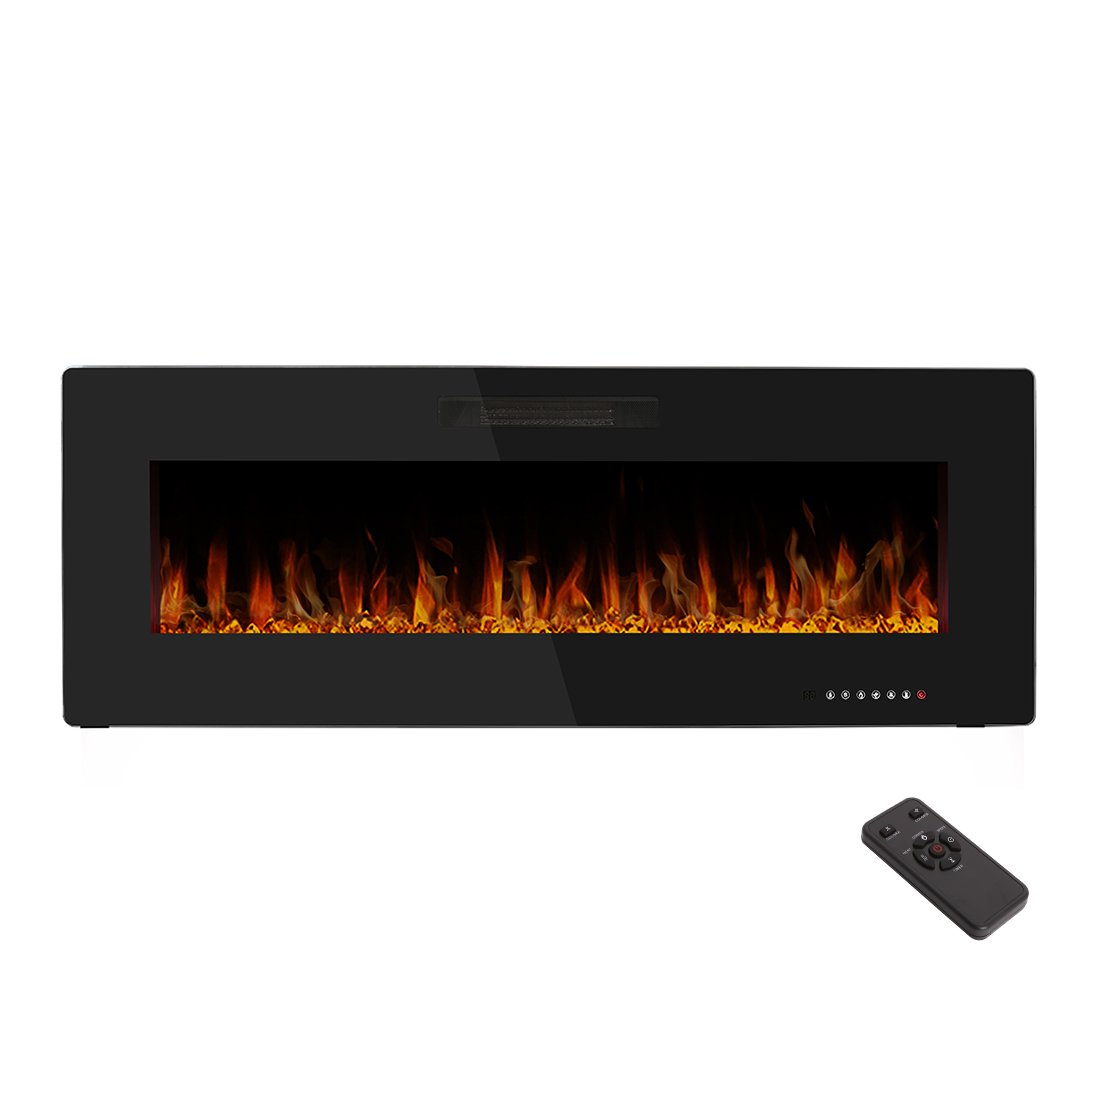 R.W.FLAME 50'' Electric Fireplace,Wall Mounted & In-wall Recessed Electric Heater,Remote Control,750-1500W,1 Years Warranty